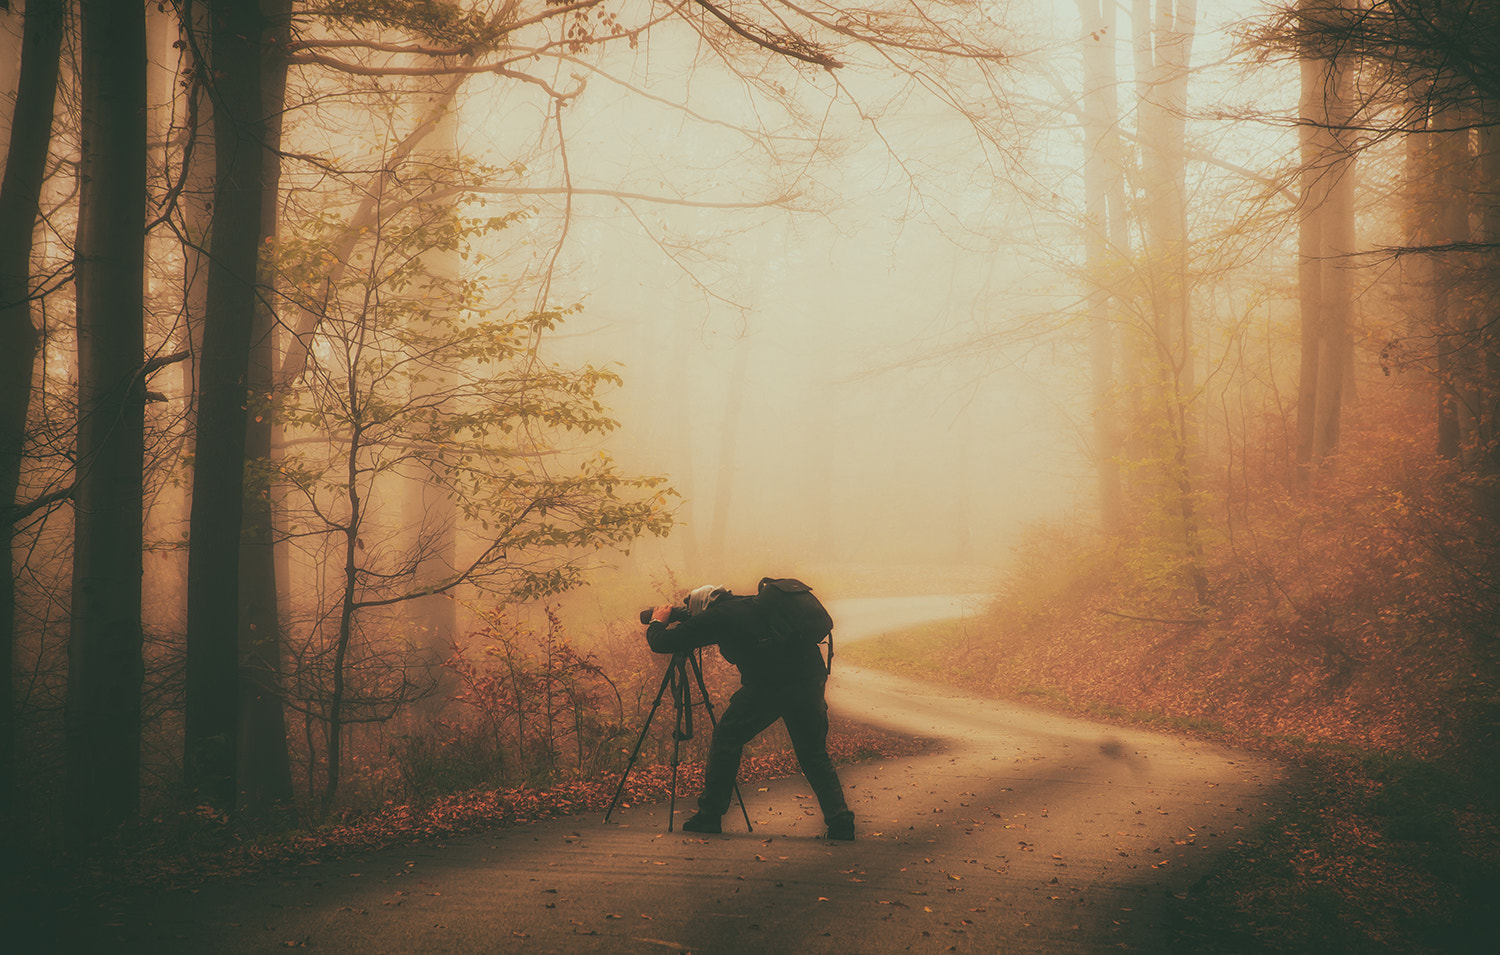 Photograph The photographer by Andy 58 on 500px